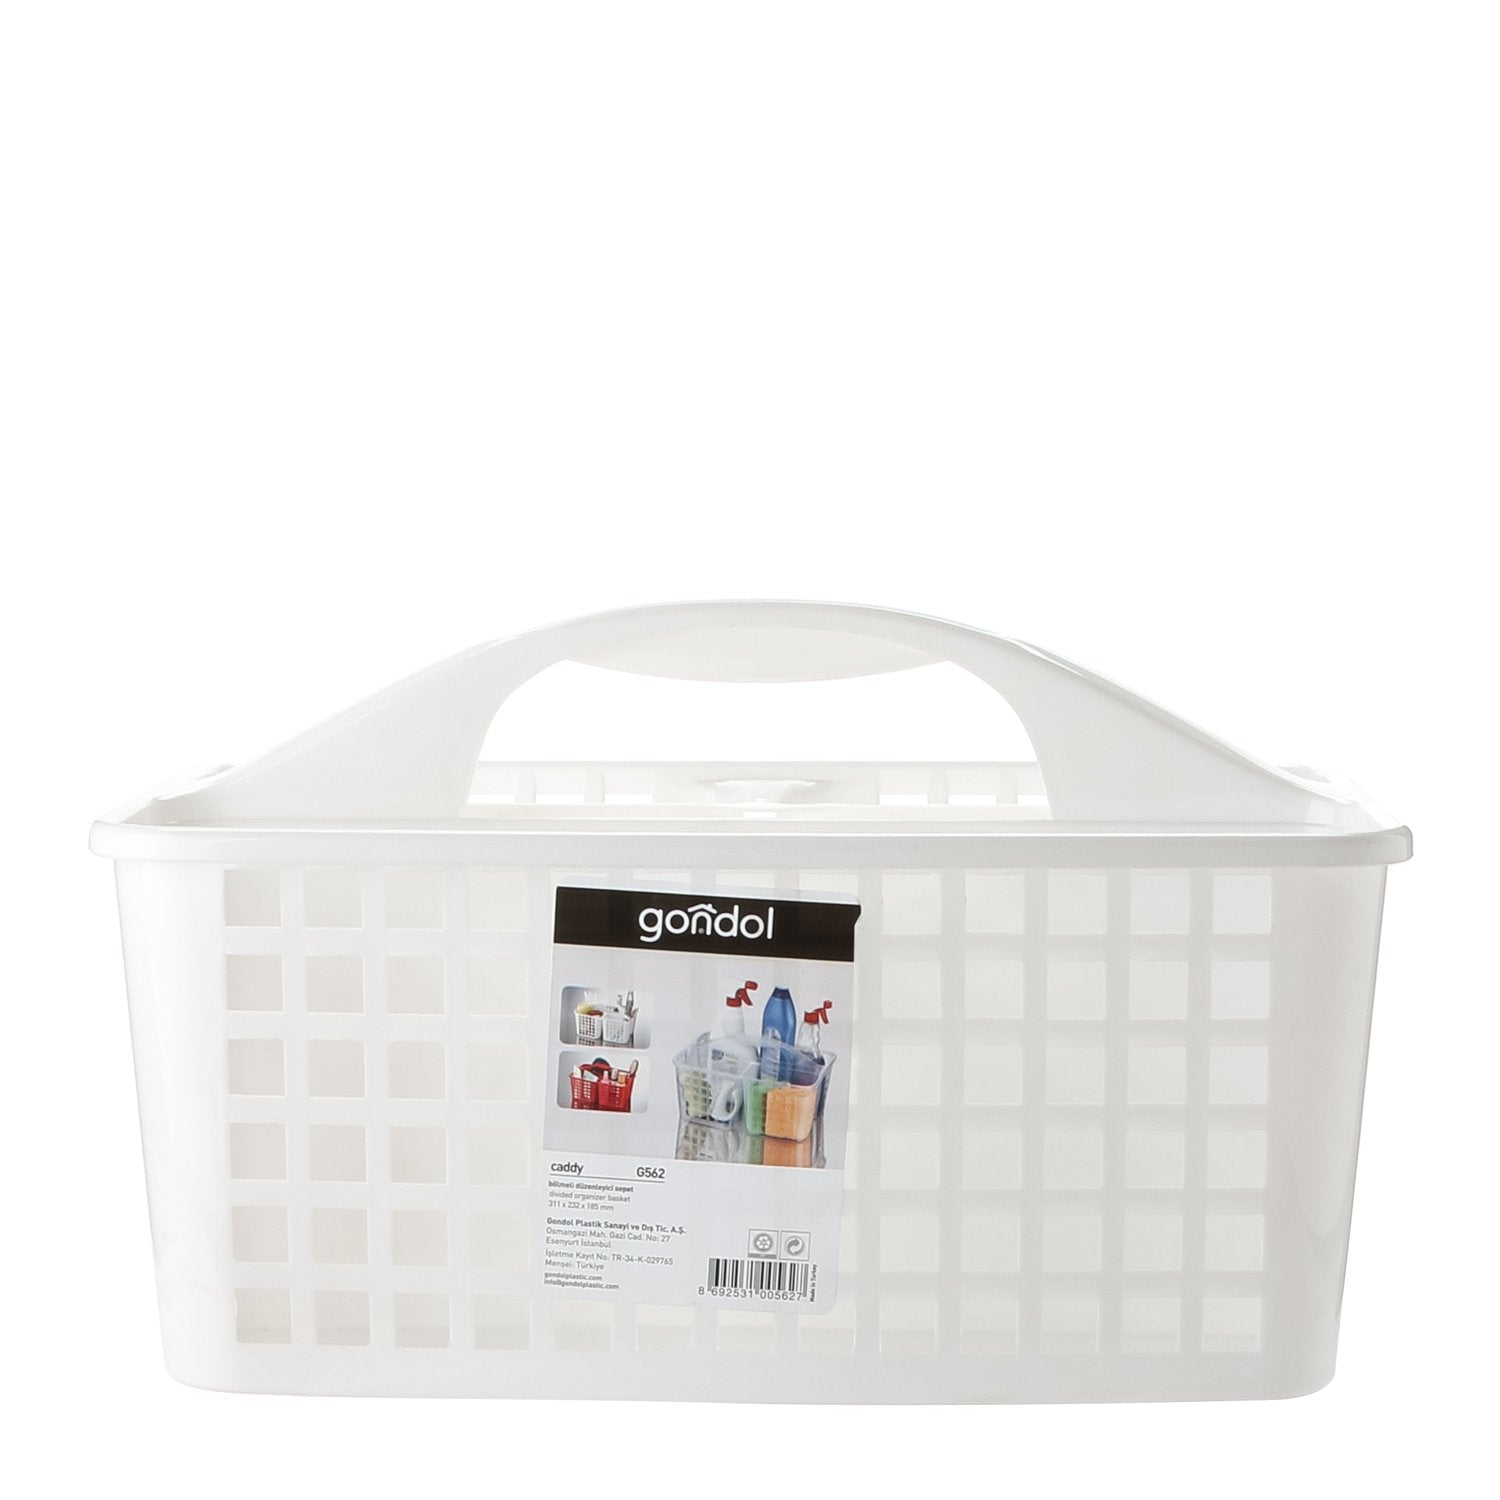 Gondol Plastic Basket with 3 Divisions Made in Turkey - waseeh.com